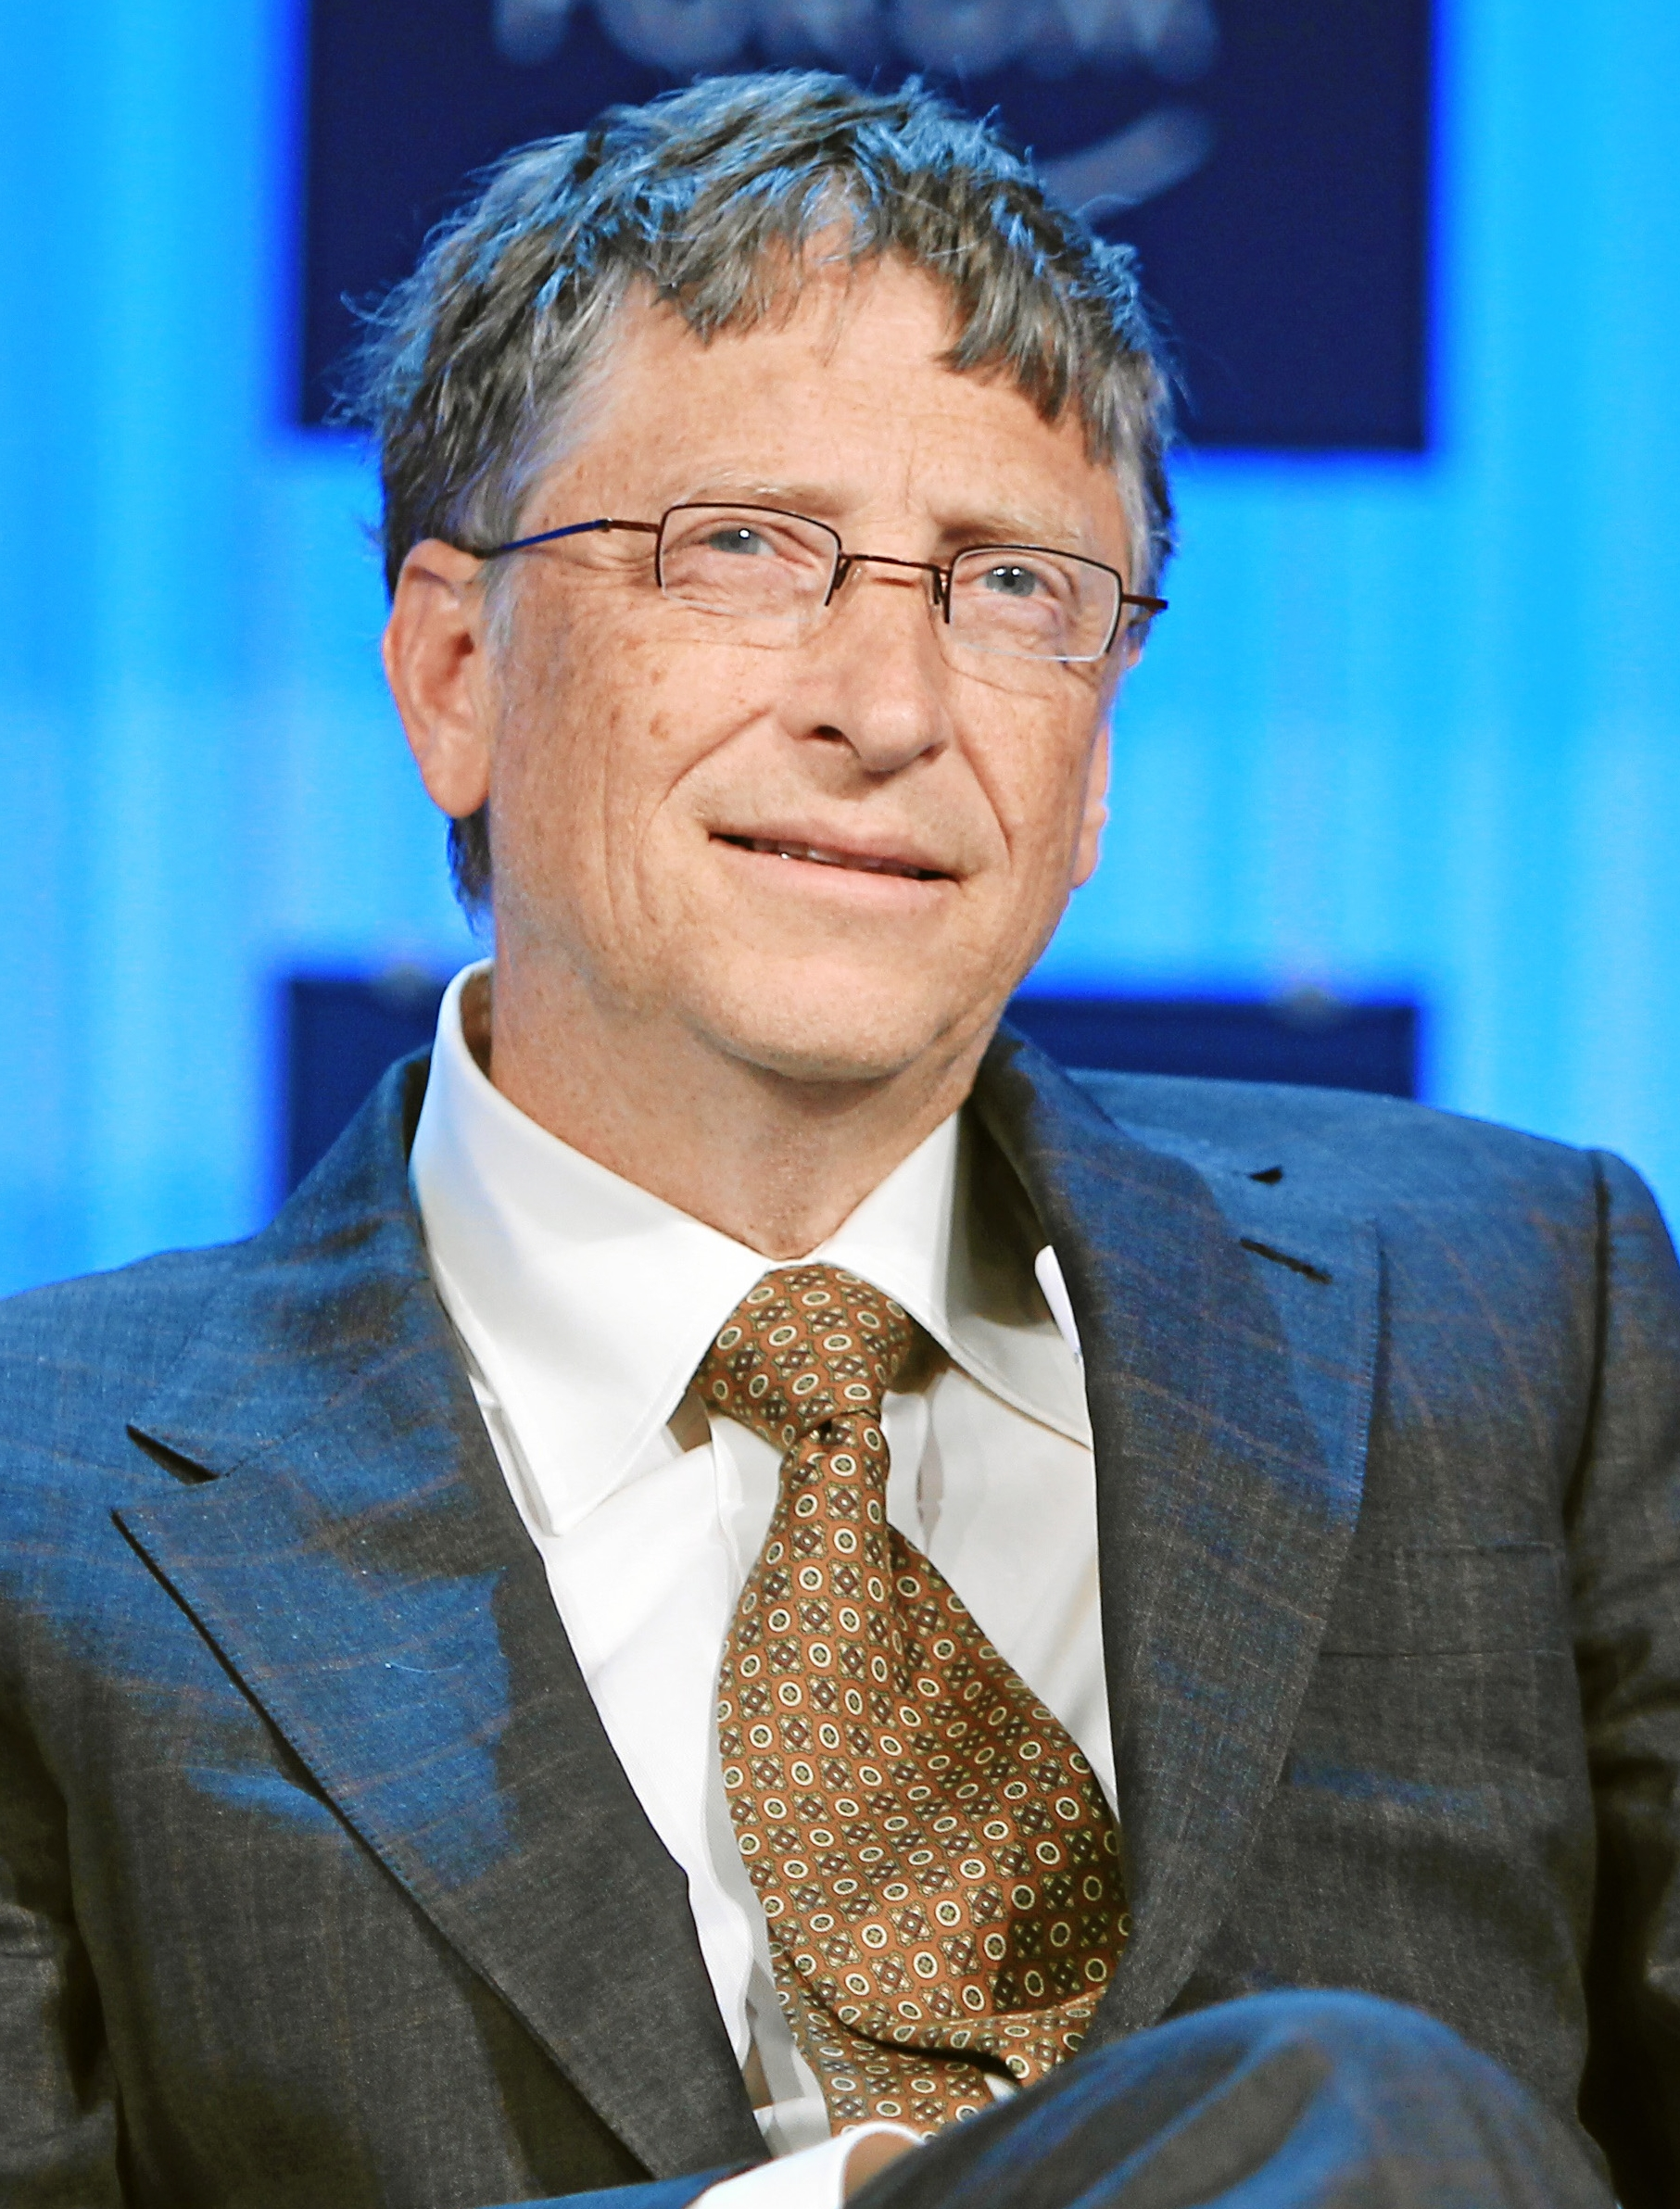 Bill Gates rose from failure to fame and success like these other celebrities